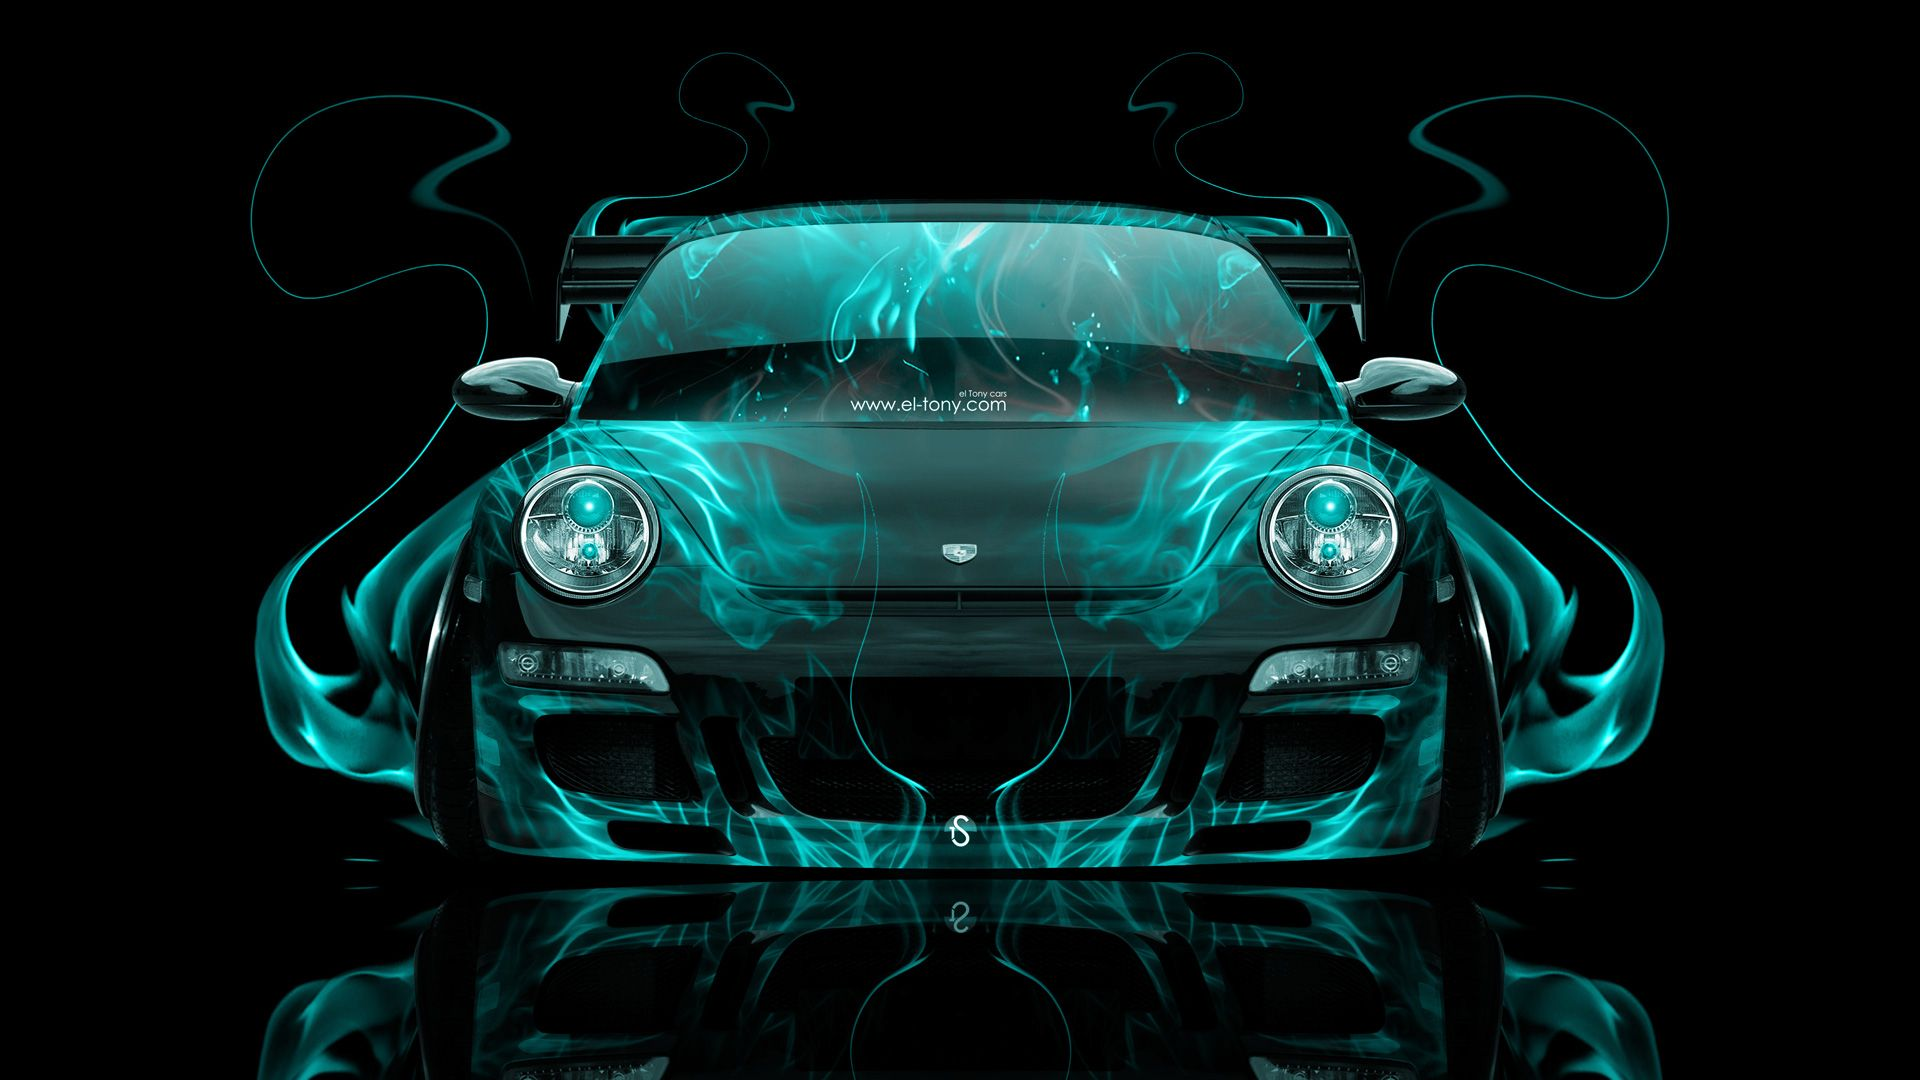 Porsche 911, Illustrators, Illustrator, Illustrations